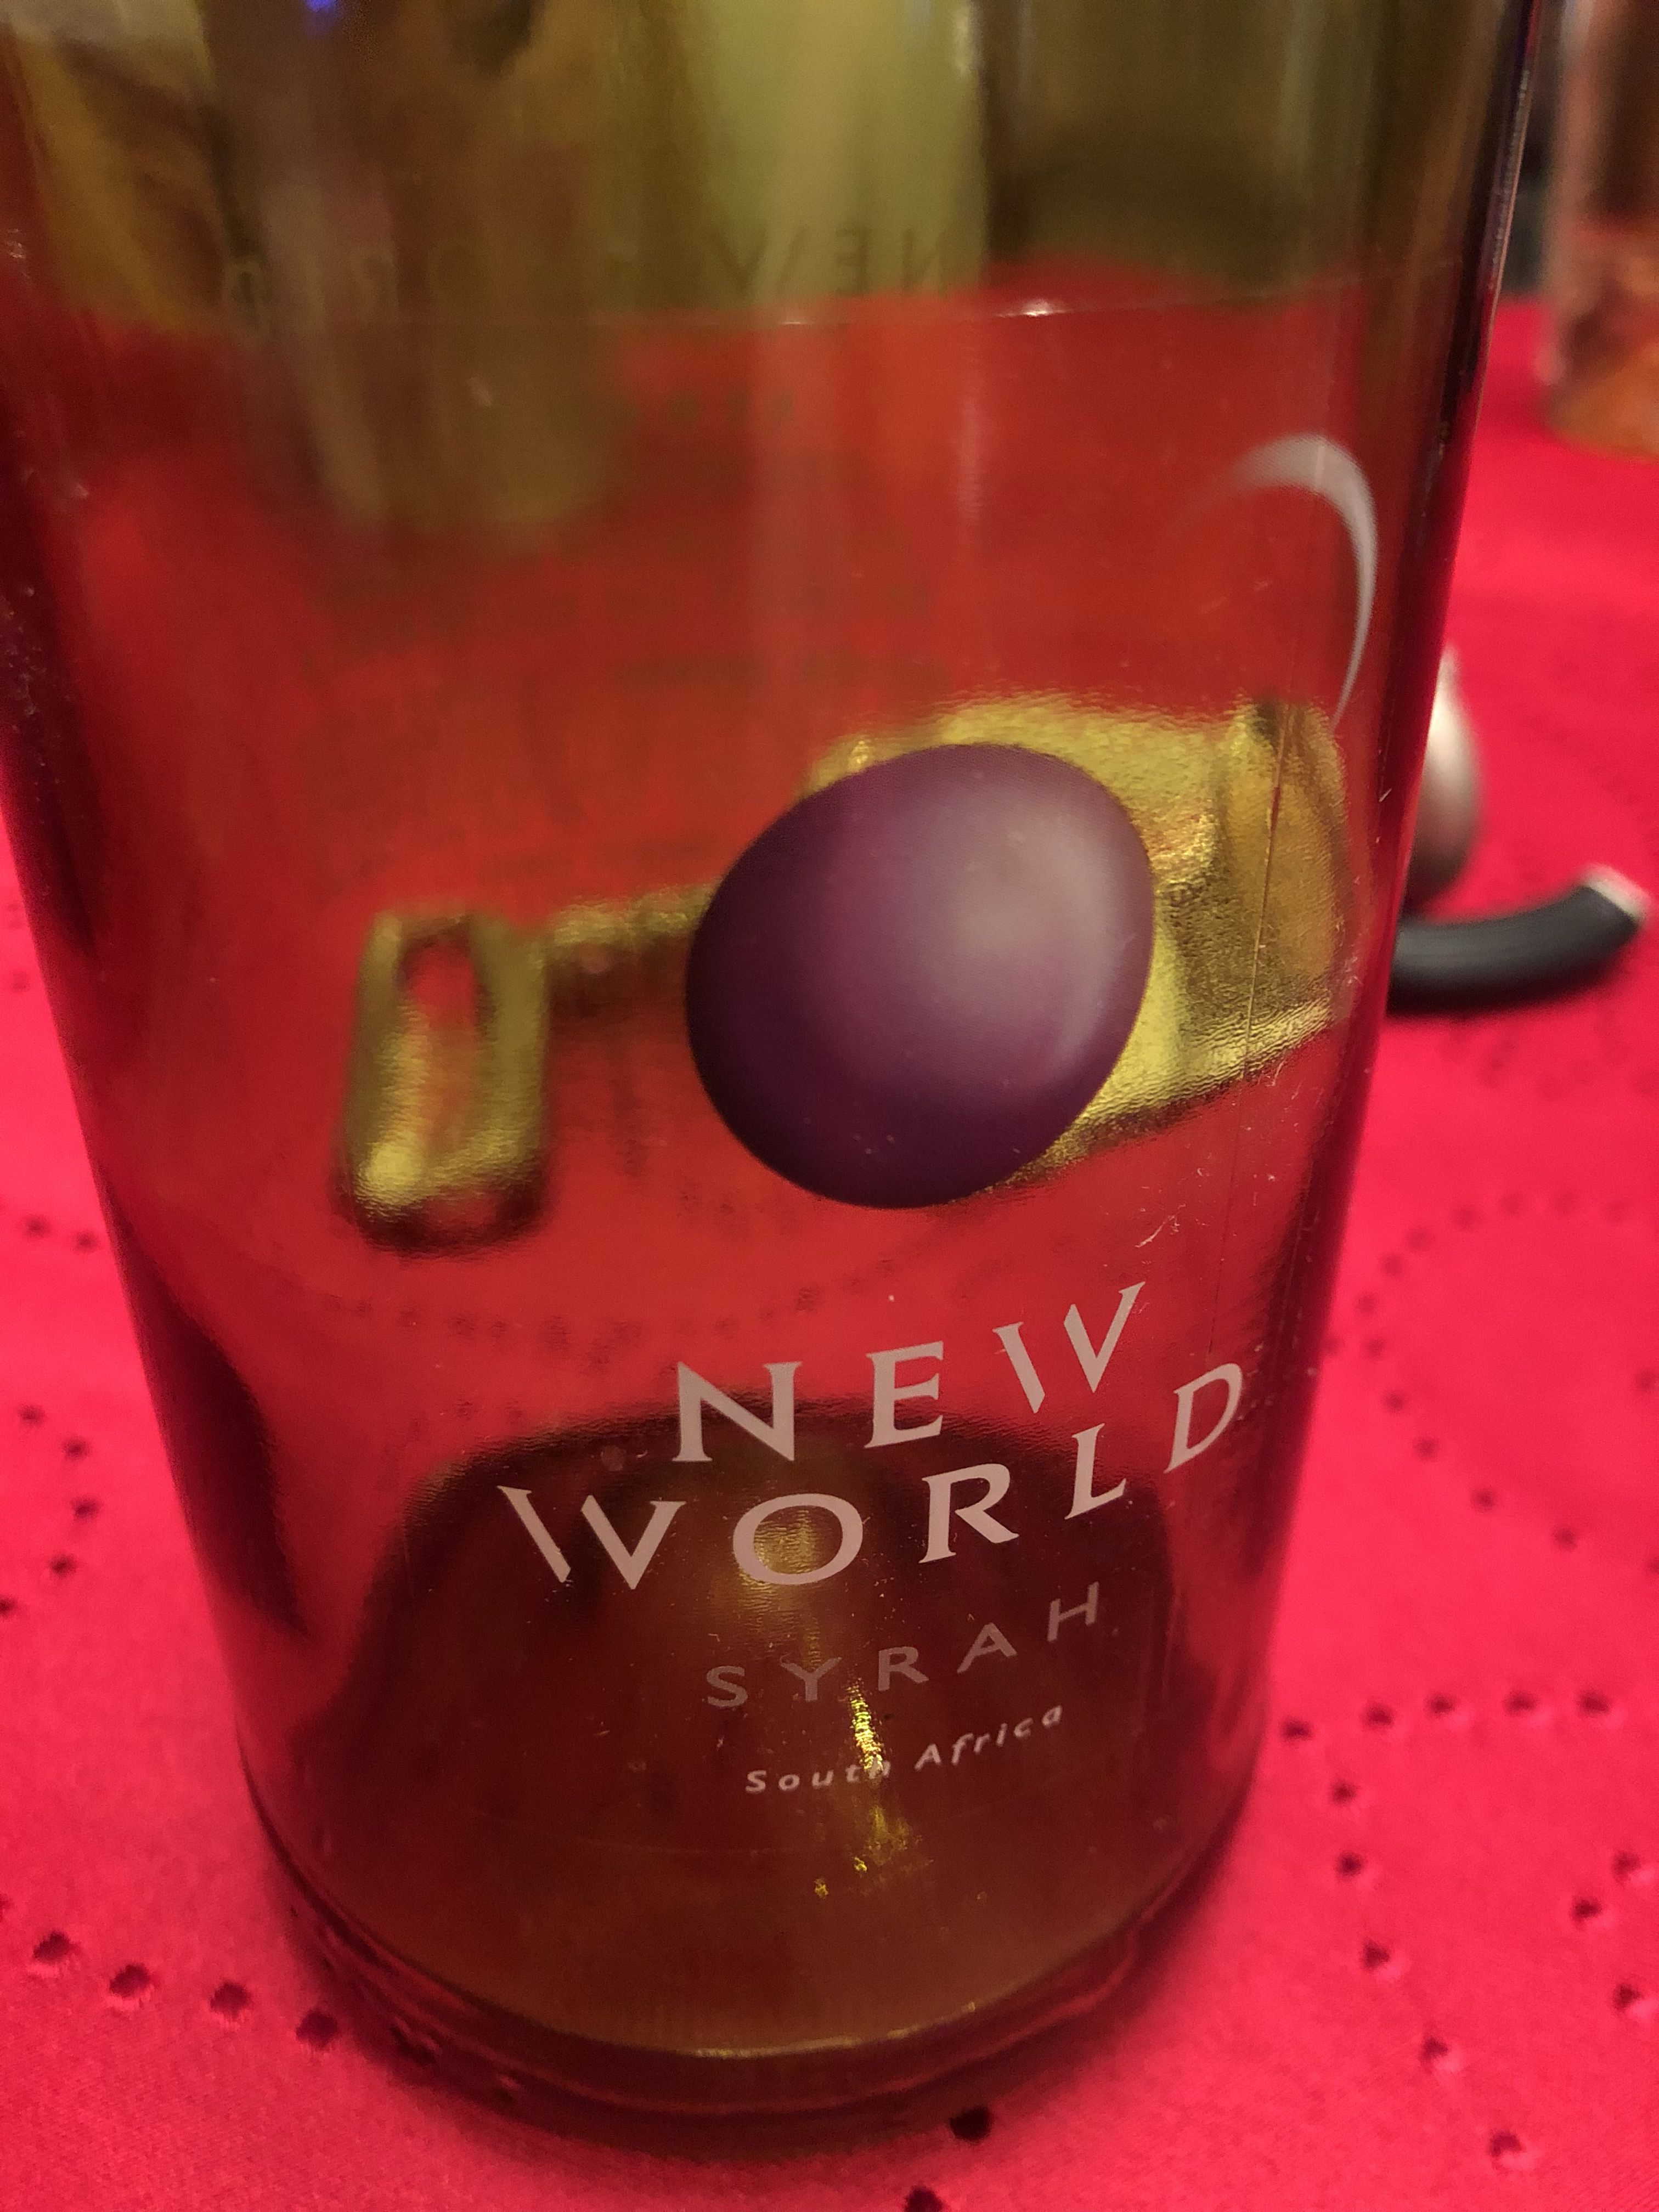 New World Syrah South Africa Syrah Africa Wines